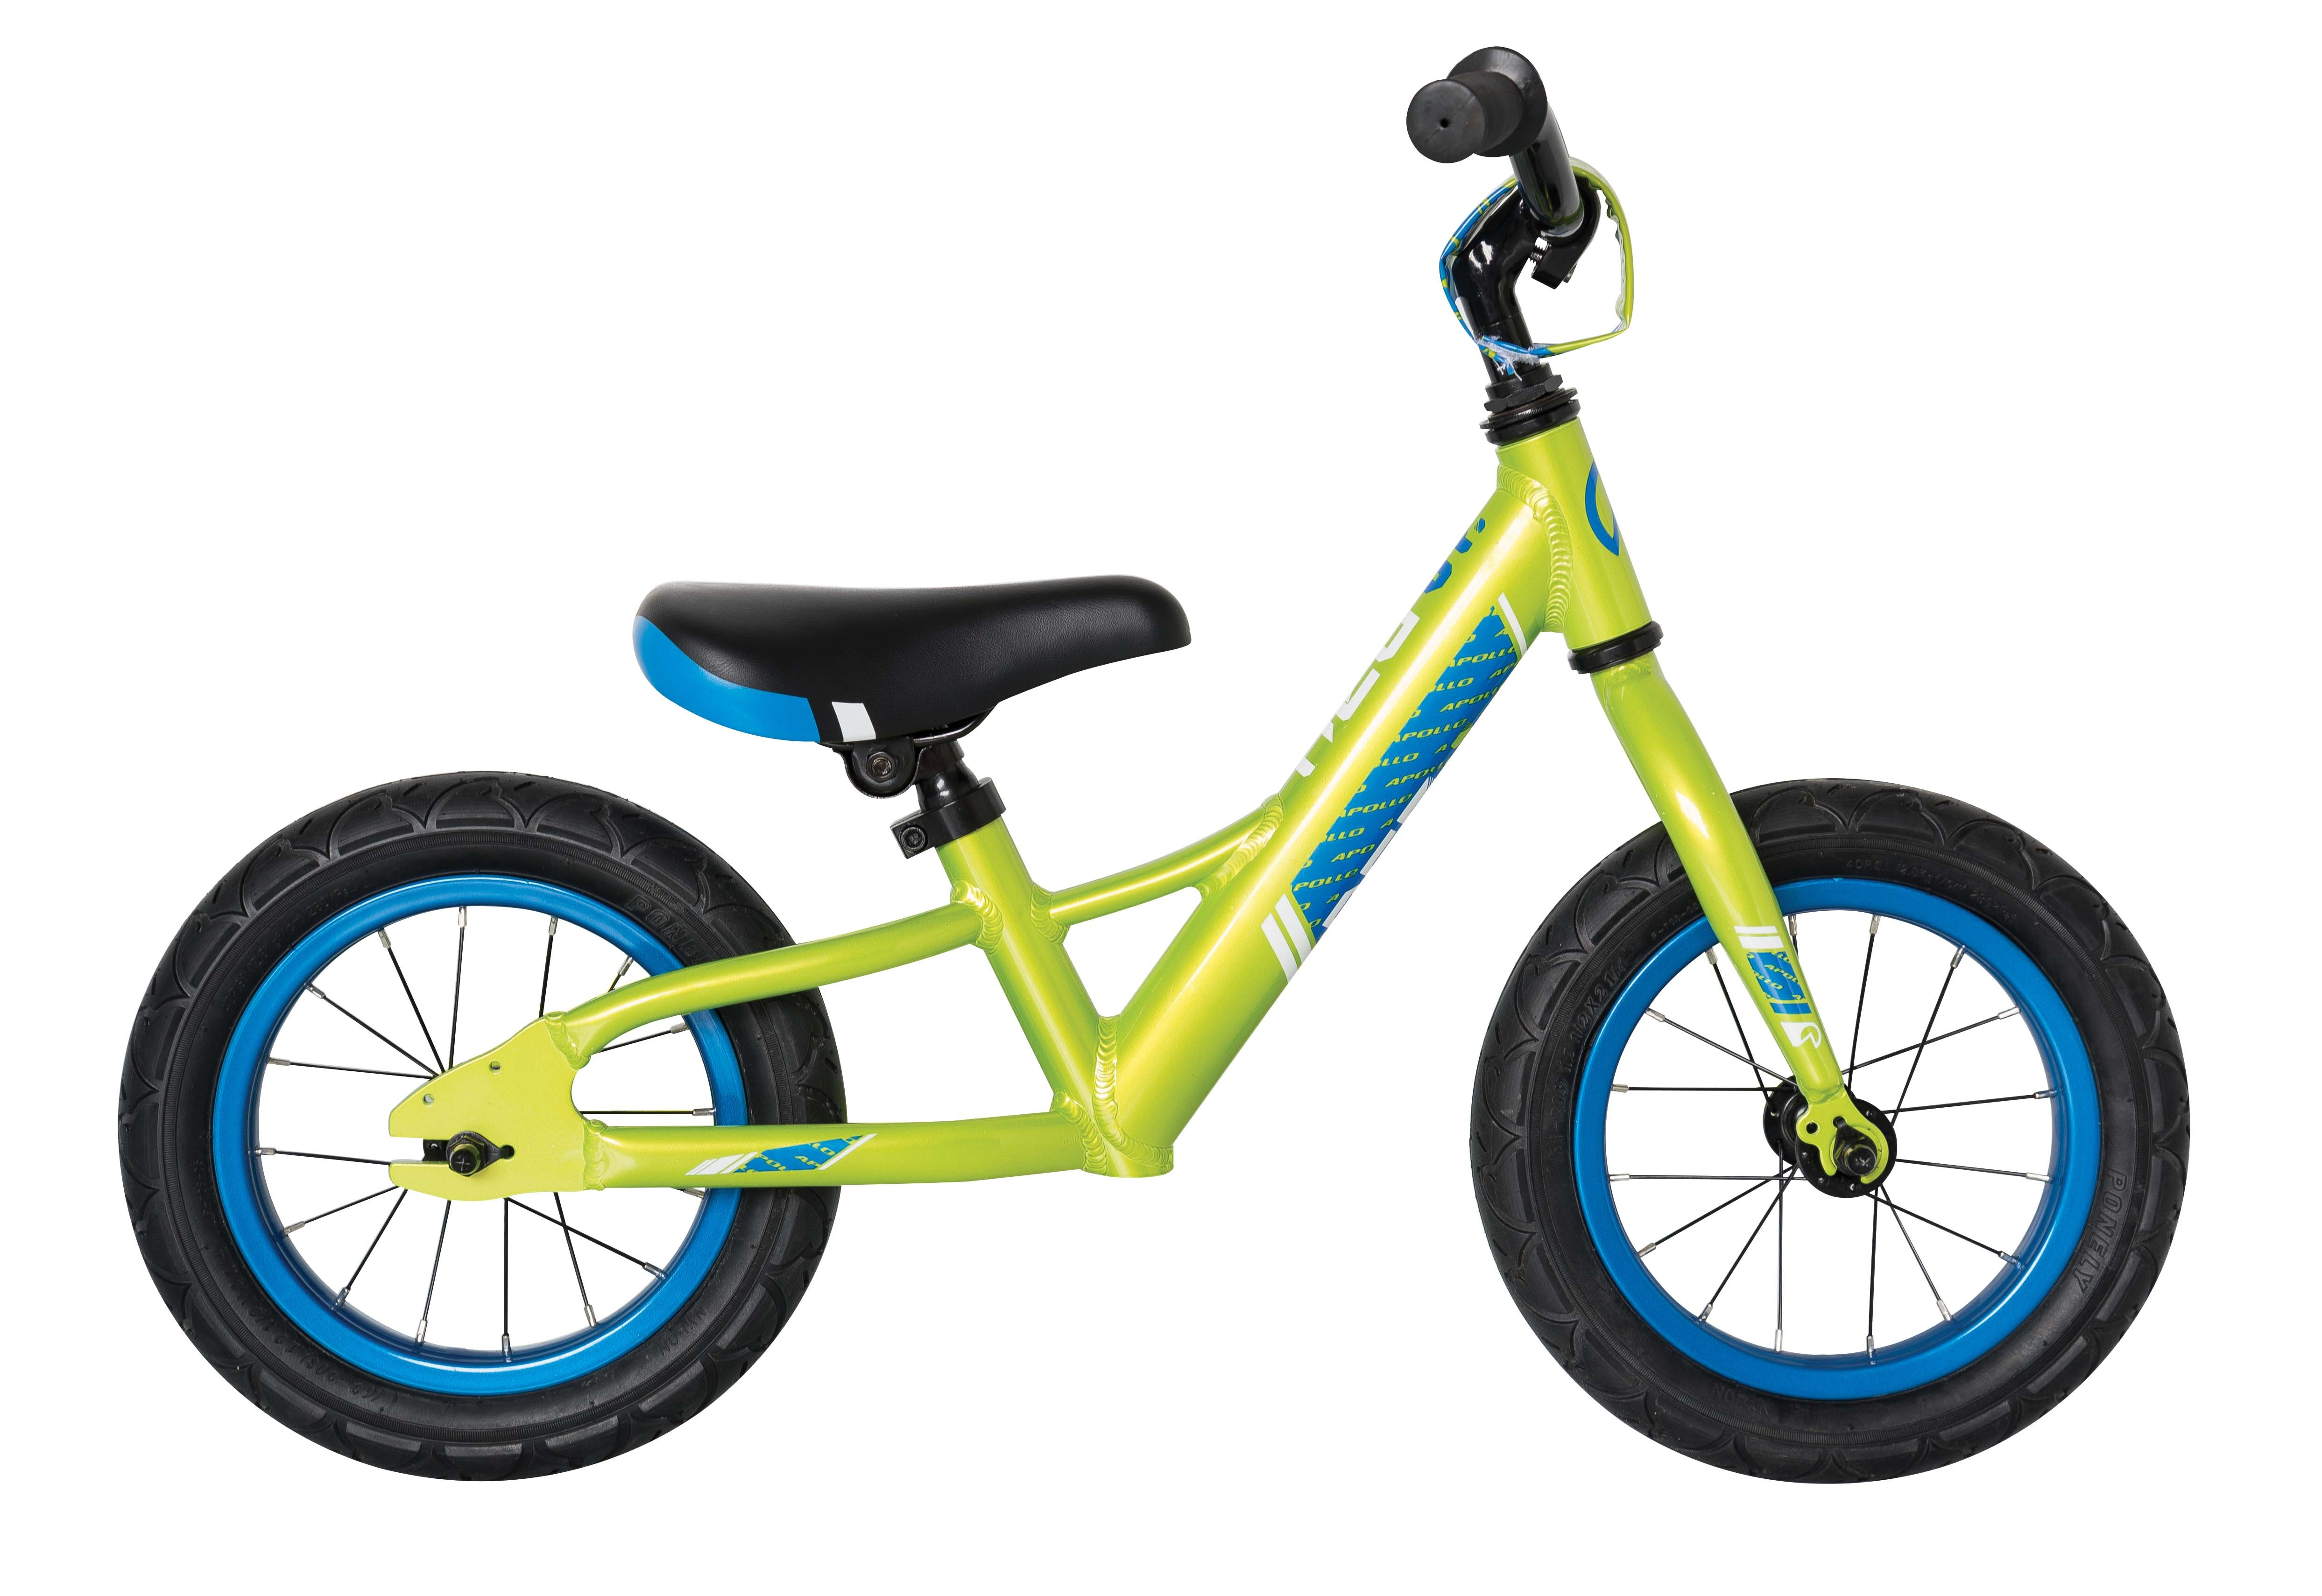 Free Pictures Of Kids Bikes, Download Free Clip Art, Free.